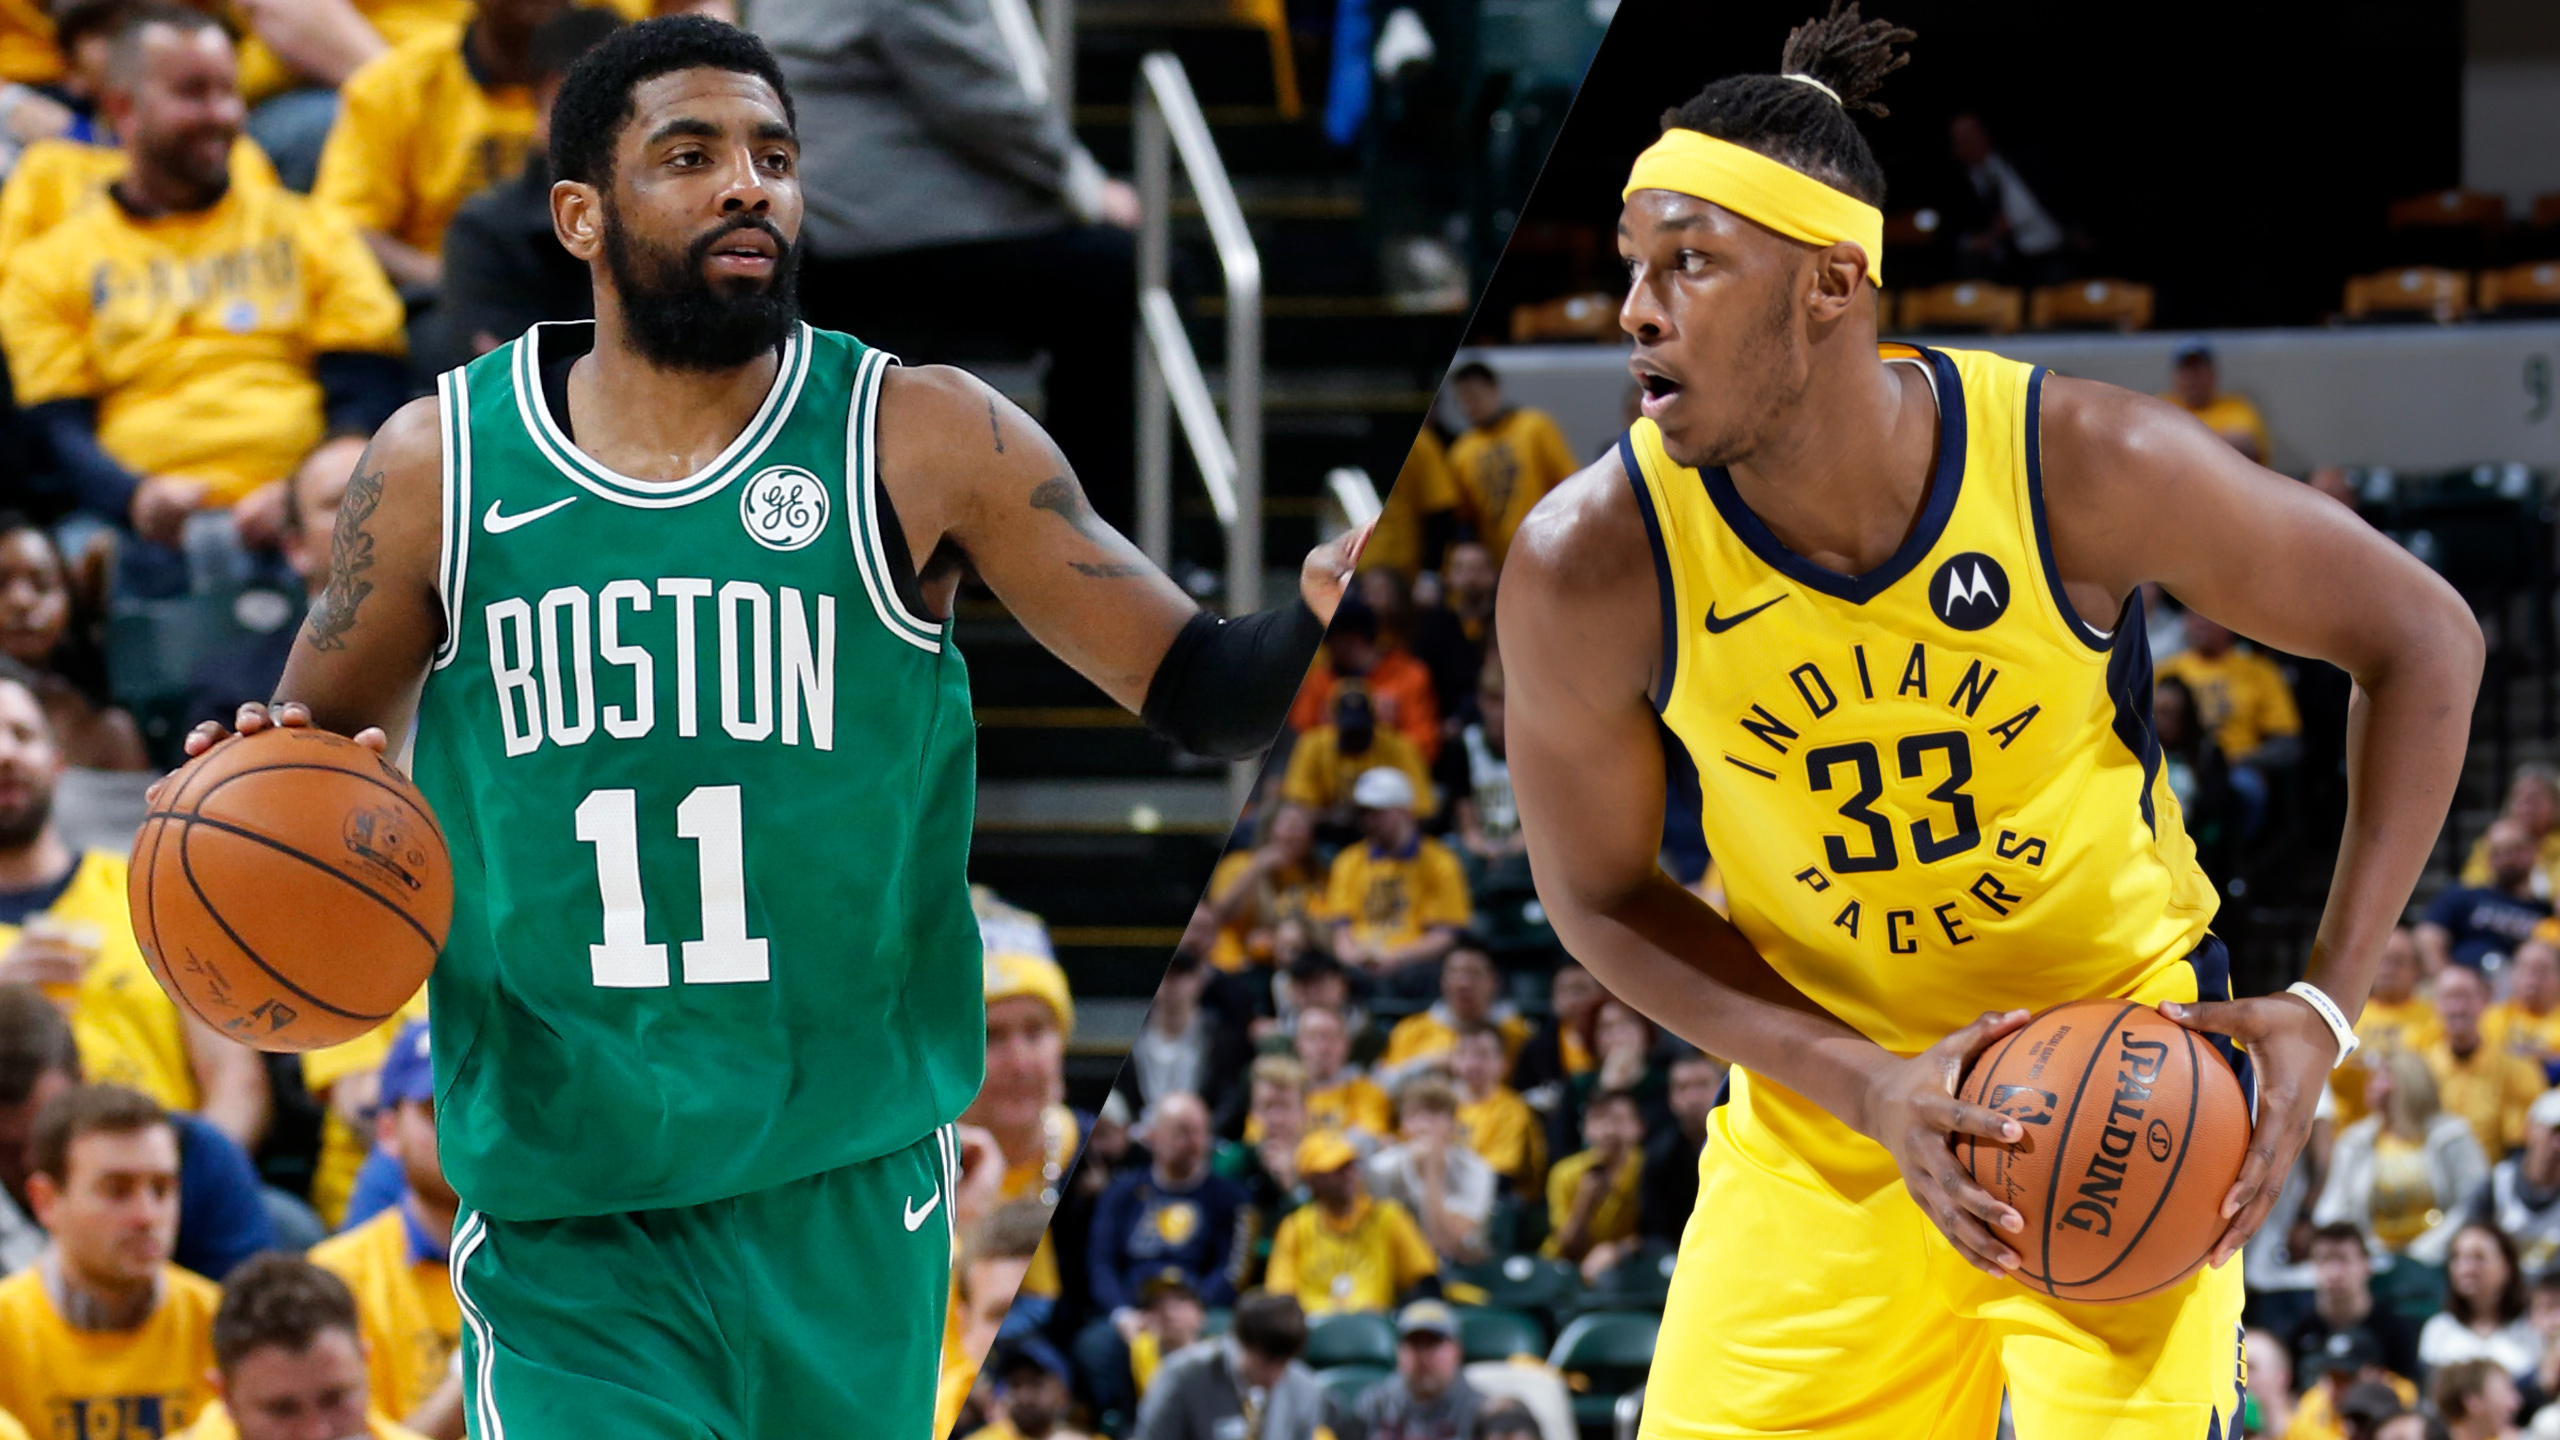 Boston Celtics vs. Indiana Pacers (First Round, Game 4)